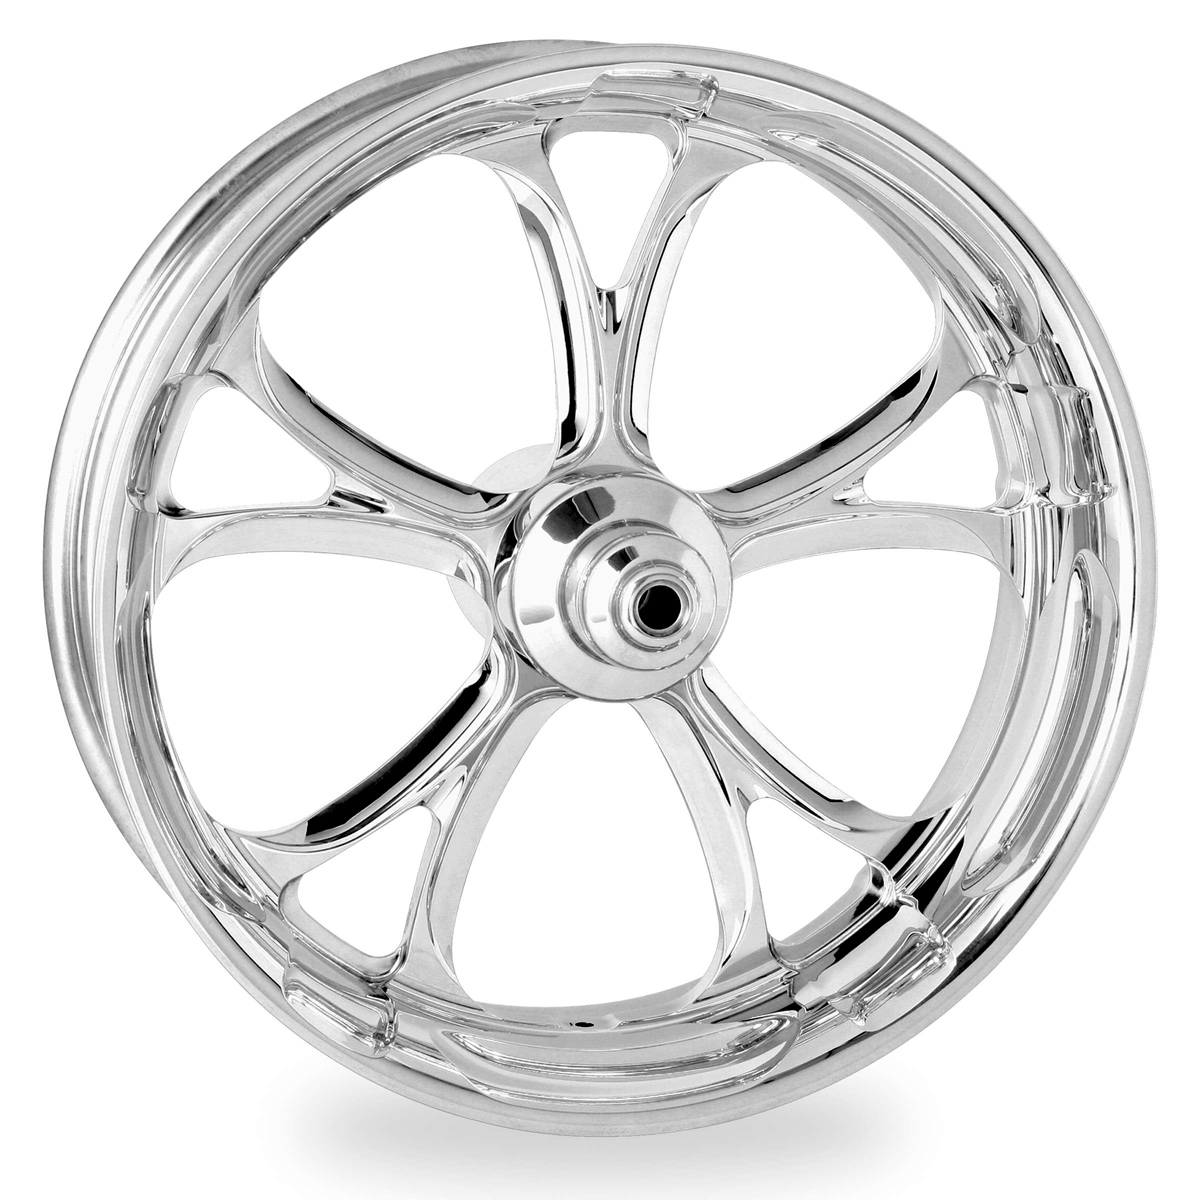 Performance Machine Luxe Chrome Rear Wheel 18x5.5 Non-ABS